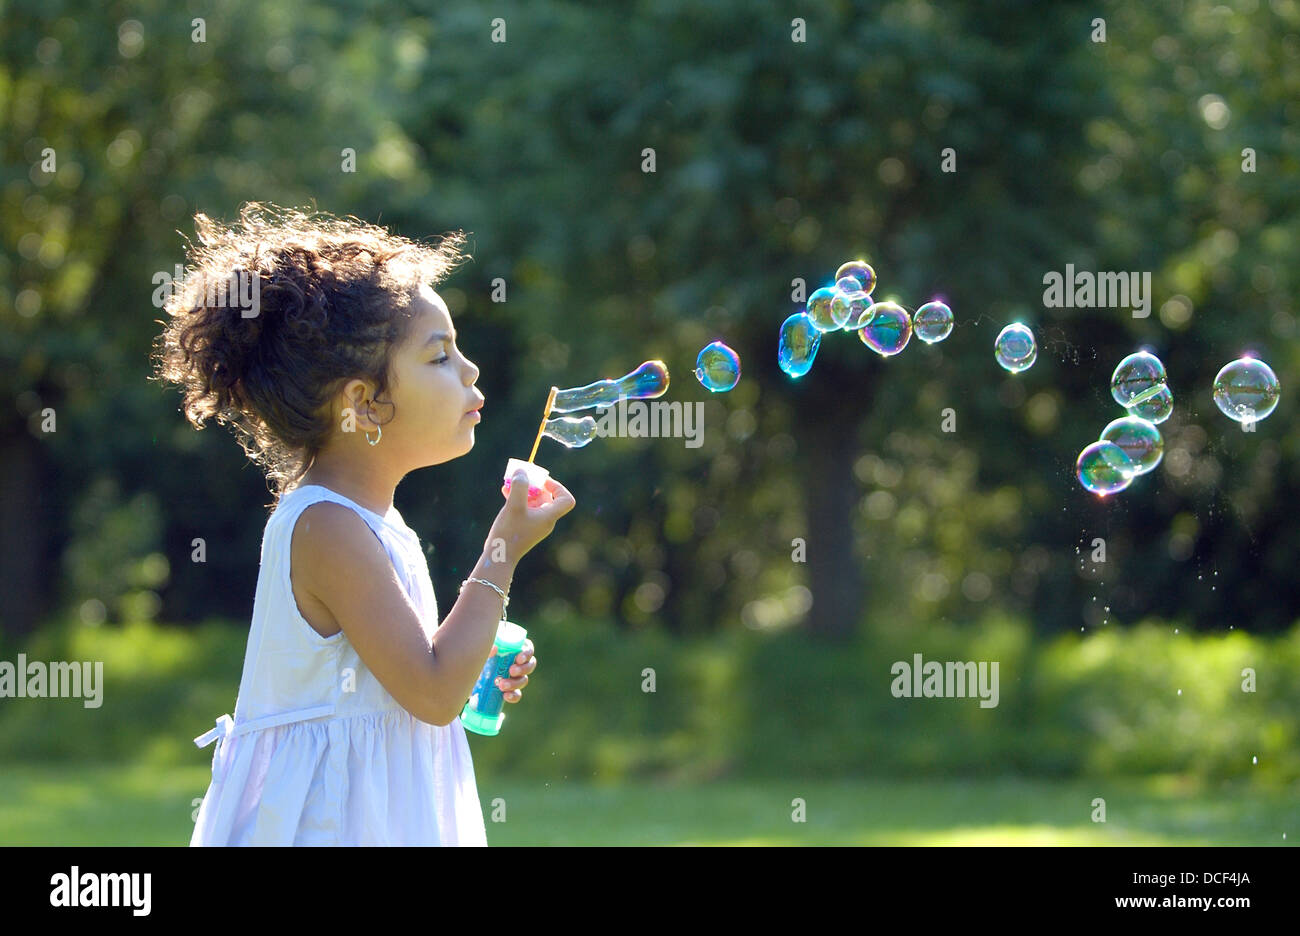 Little girl blowing bubbles in the park Photo Stock